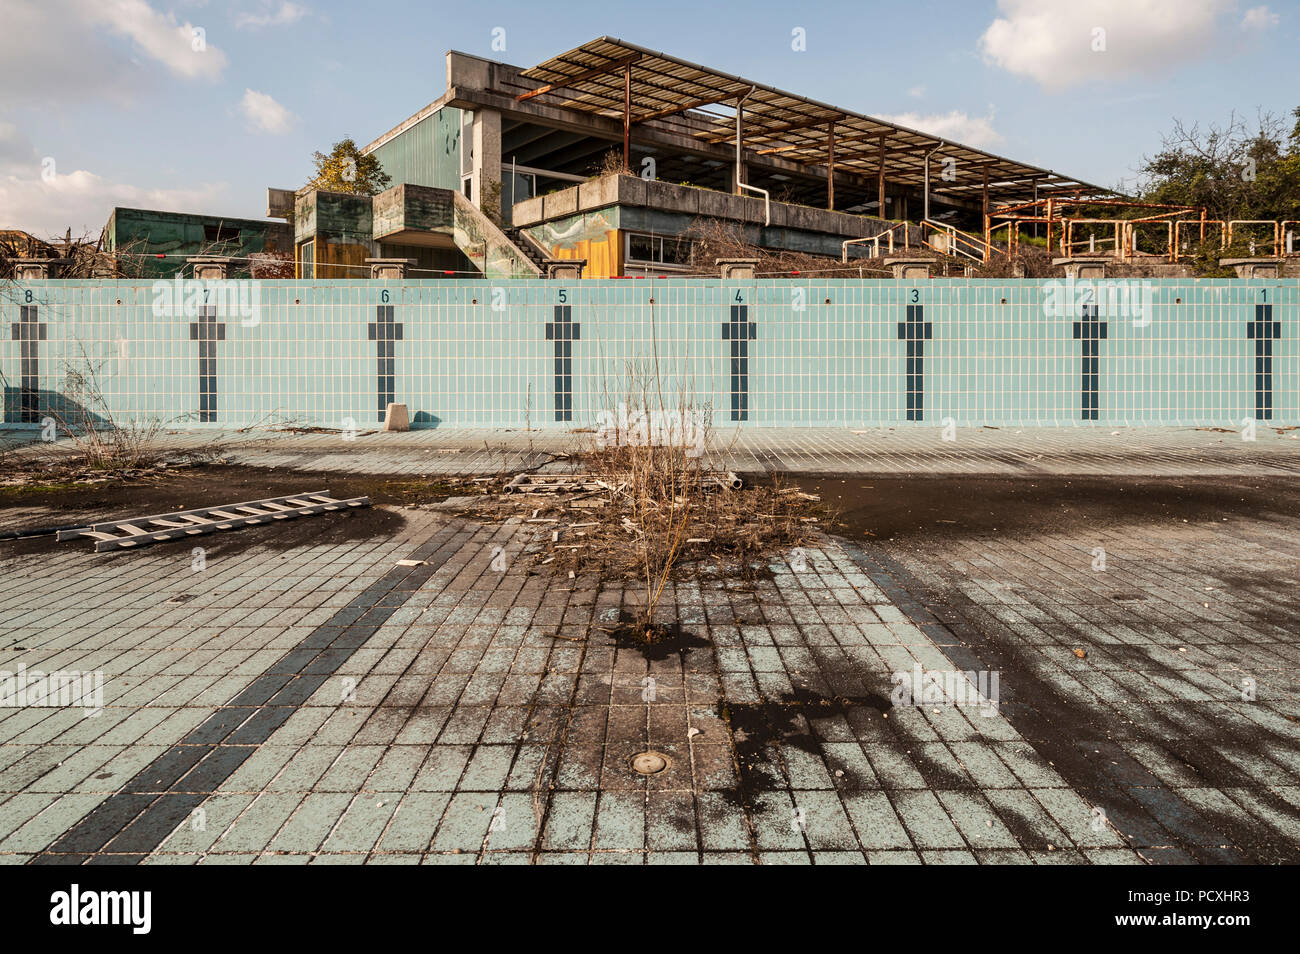 Page 2 Olympic Swimming Pool High Resolution Stock Photography And Images Alamy